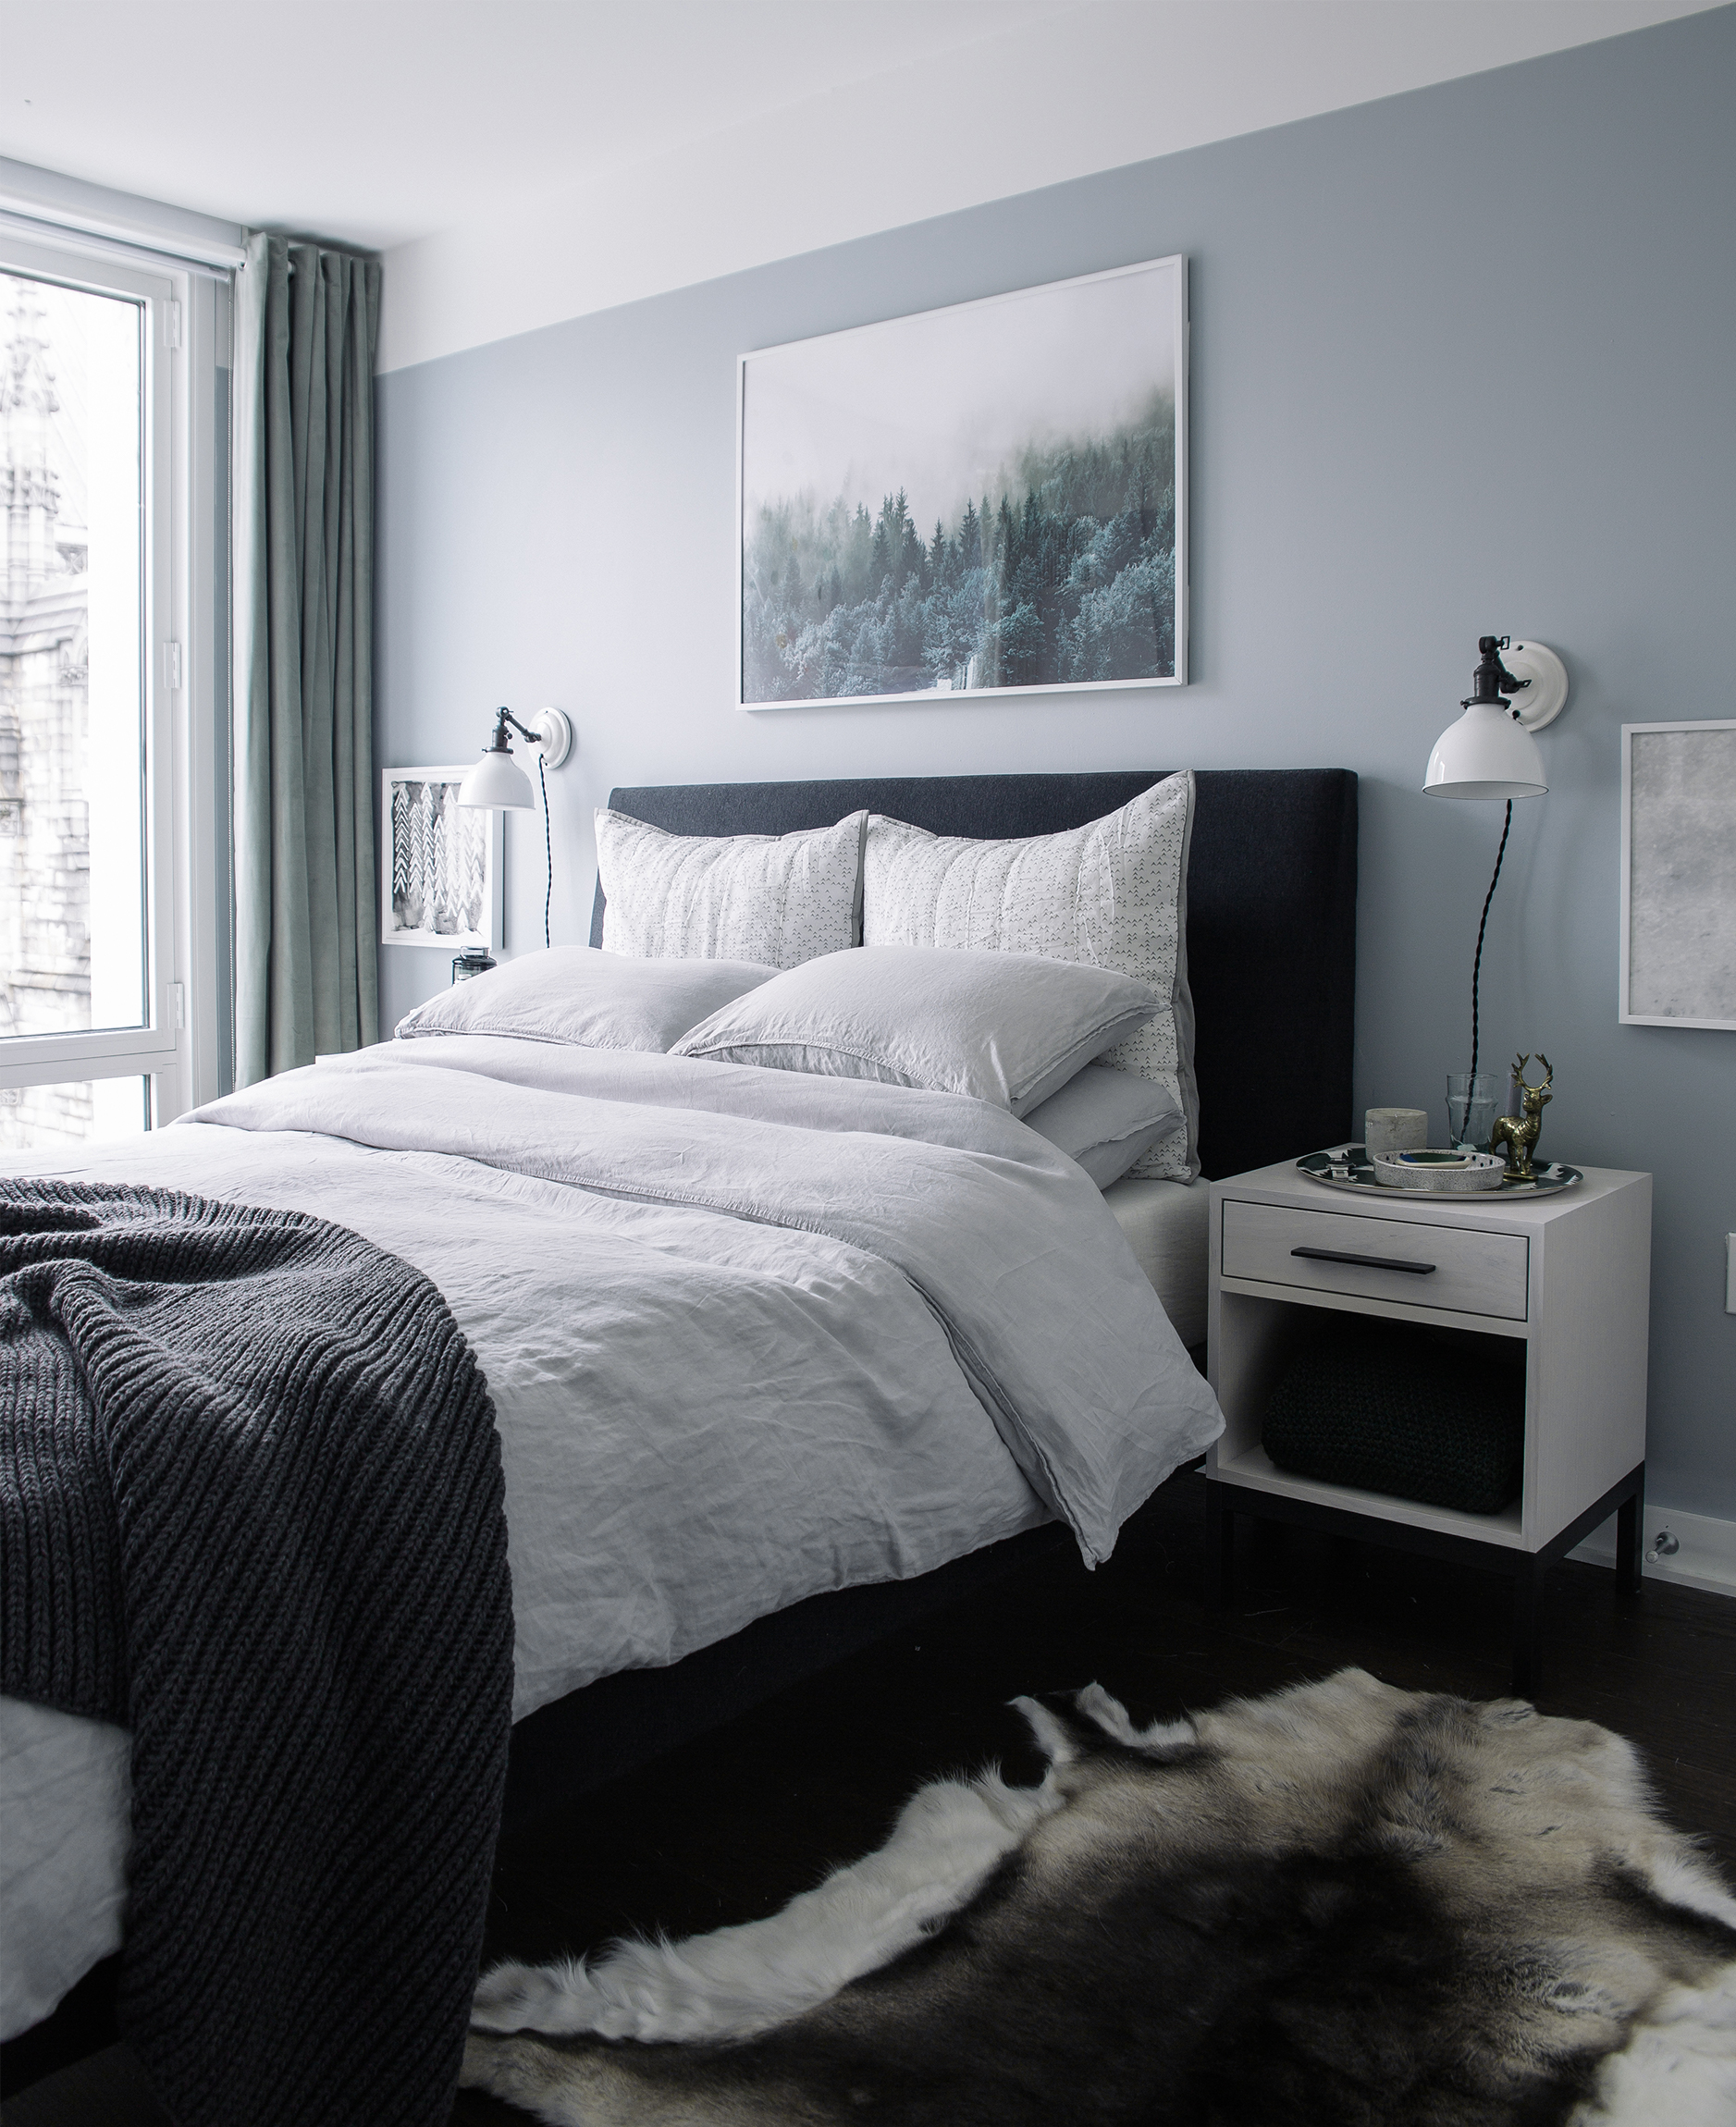 See Inside The 20 Best Gray Bedroom Color Schemes Ideas ...